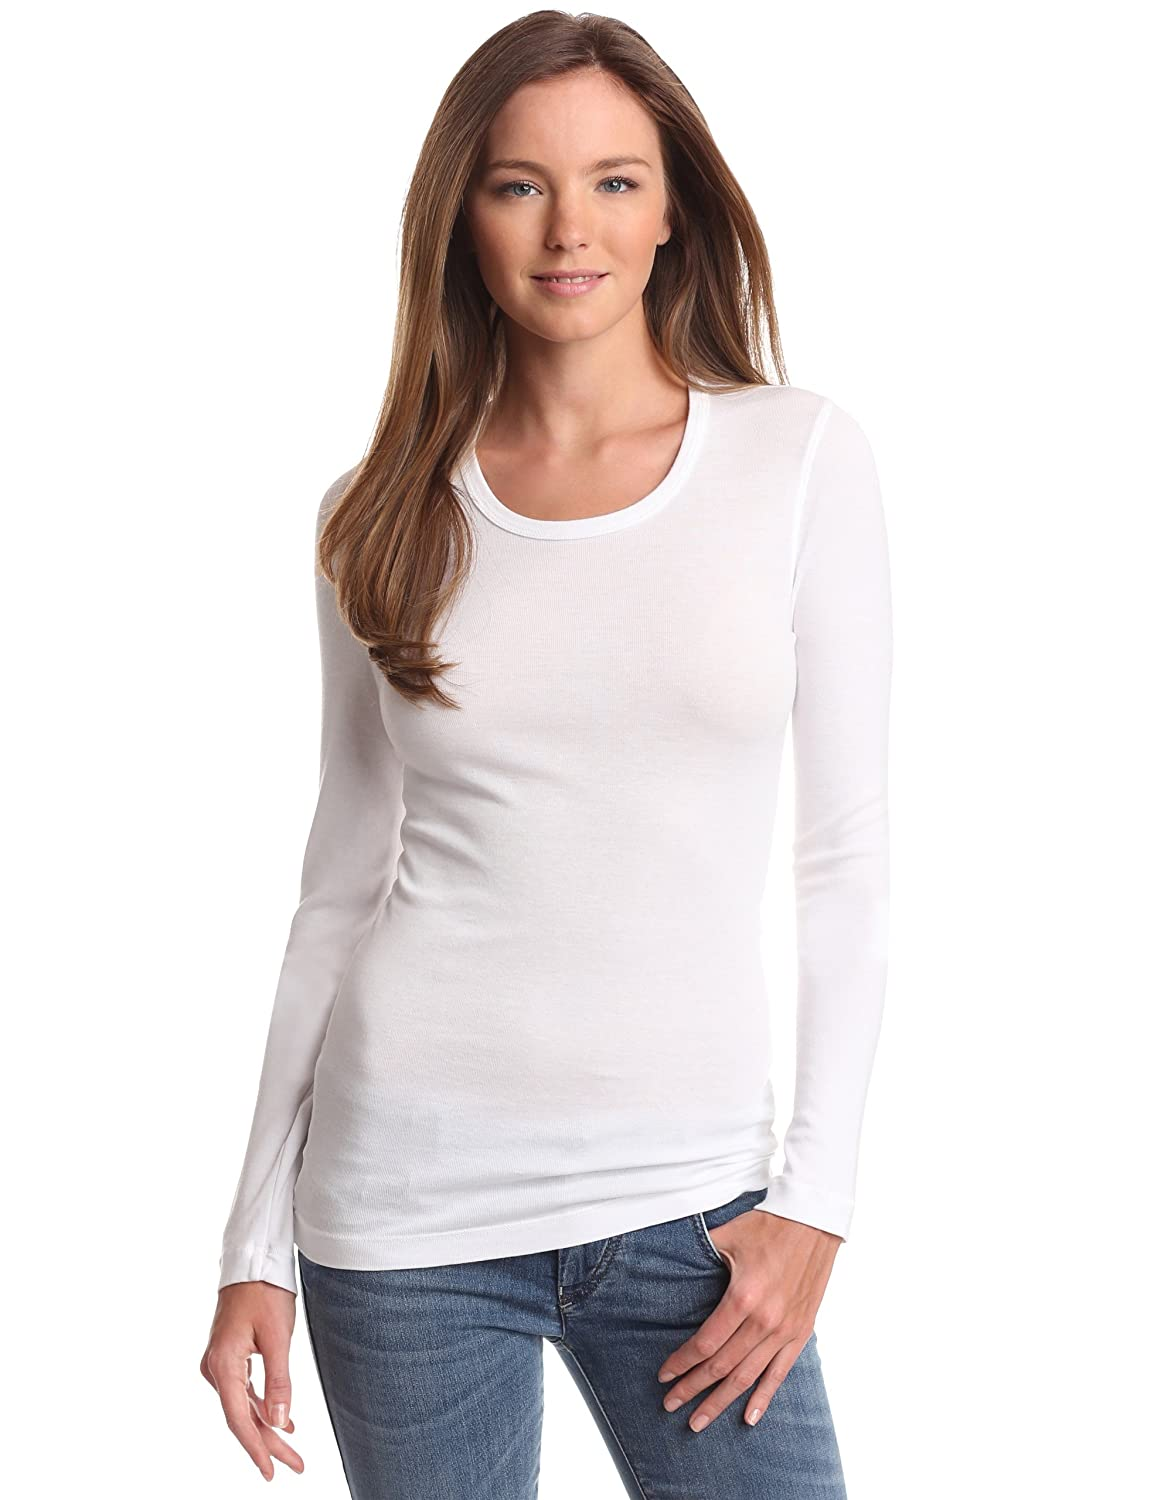 Amazon.com: Splendid Women's 1X1 Long-Sleeve Crew T-Shirt: Clothing